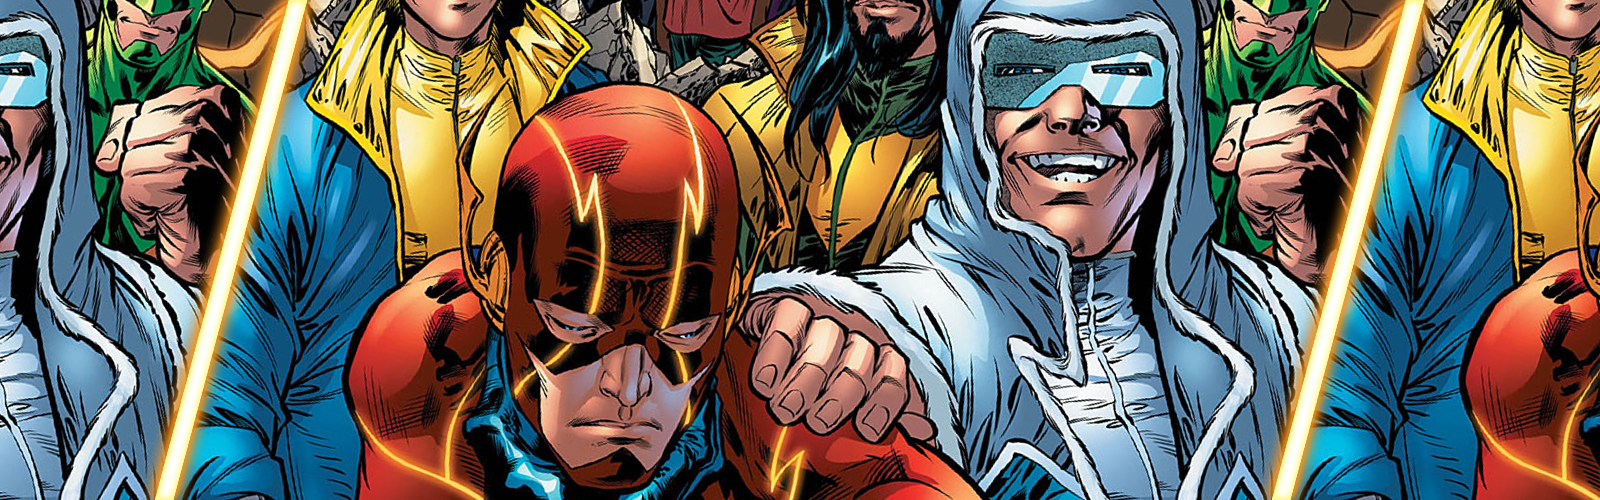 New Releases 20-04-16, featuring The Flash